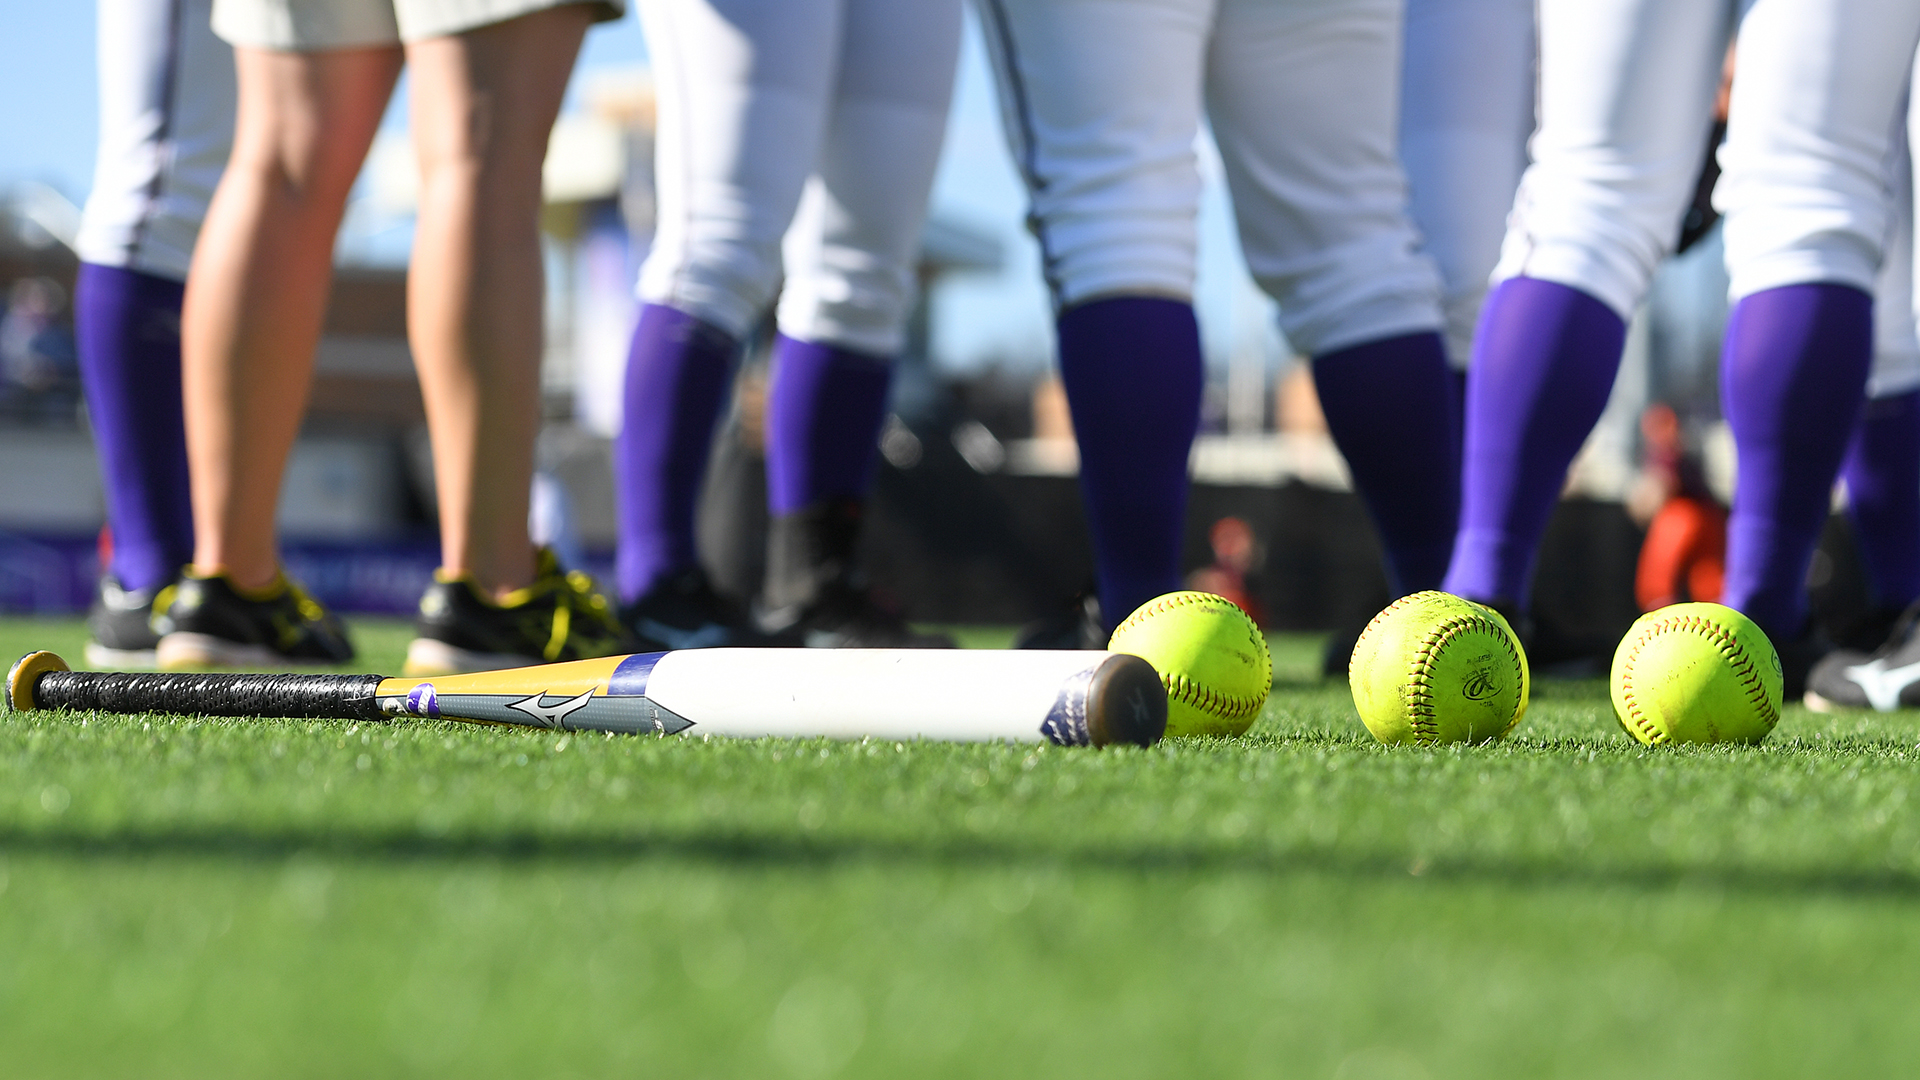 Softball: Wednesday's Doubleheader Versus Virginia Tech Canceled)